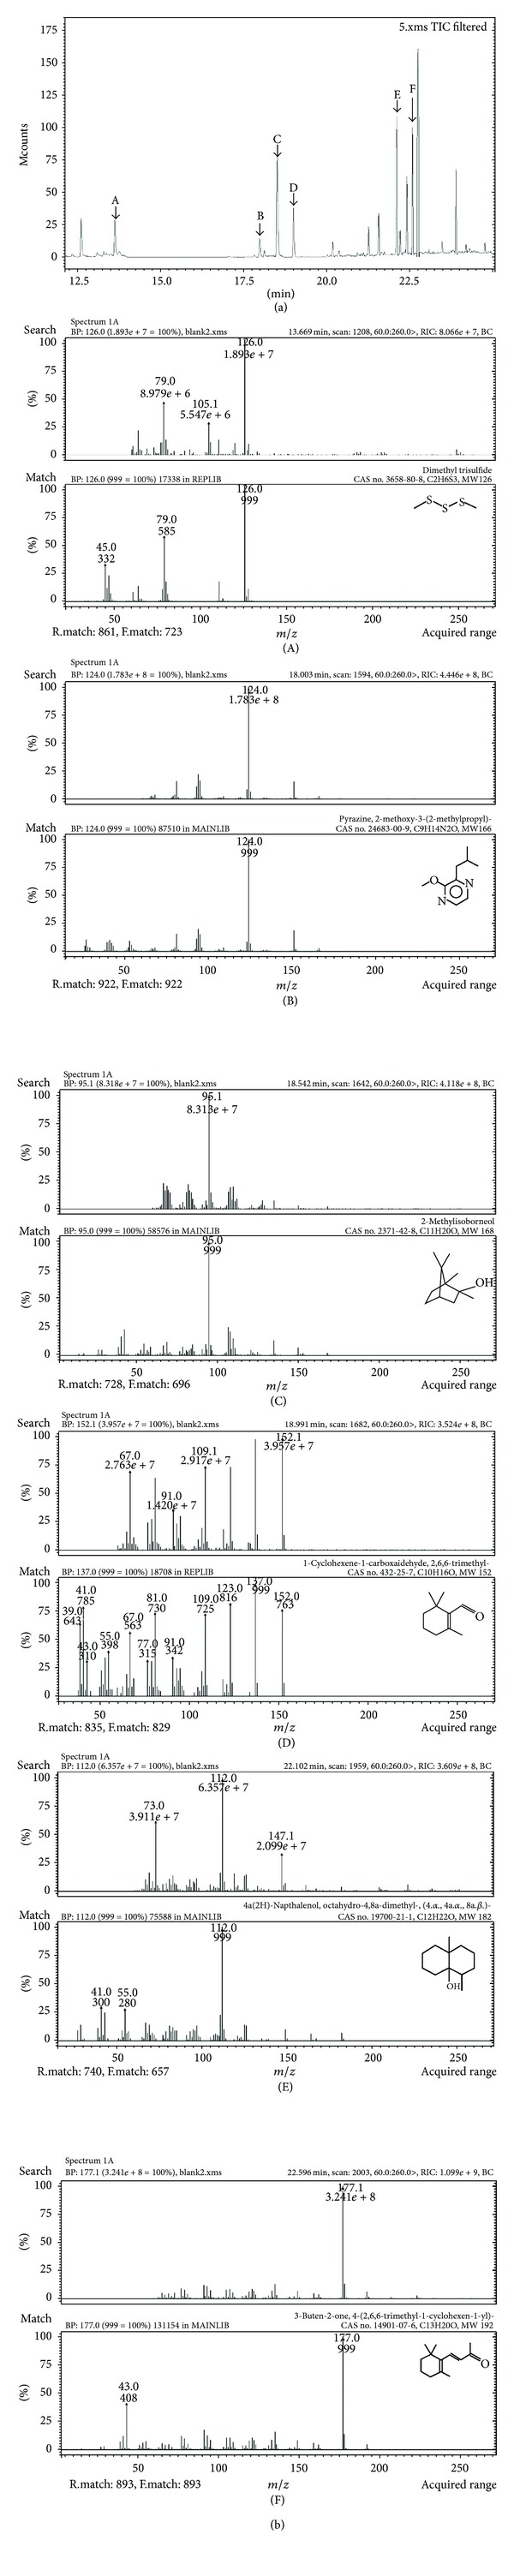 (a) MS-chromatogram of water sample (total ion current of the MS in the select ion mode) and (b) mass spectra of the six target compounds. Shown are (A) DMTS , (B) IBMP , (C) 2-MIB , (D) β -cyclocitral, (E) GSM , and (F) β -ionone for both (a) and (b).